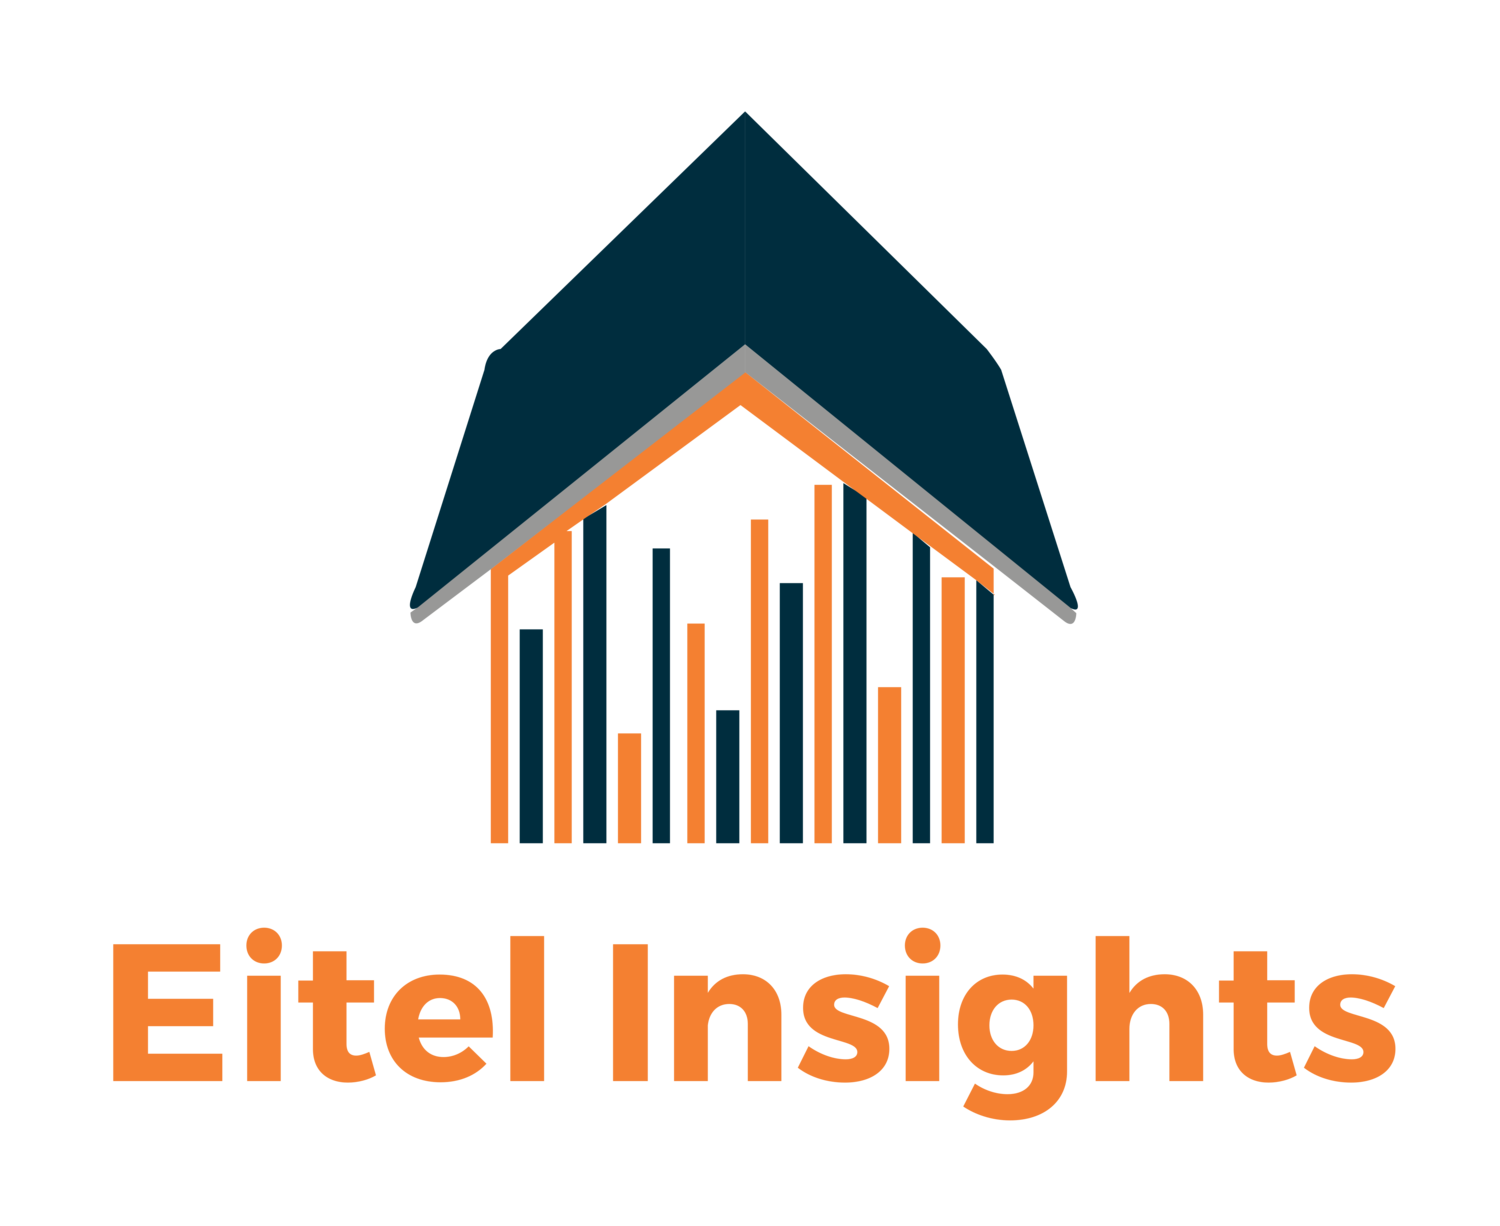 Eitel Insights